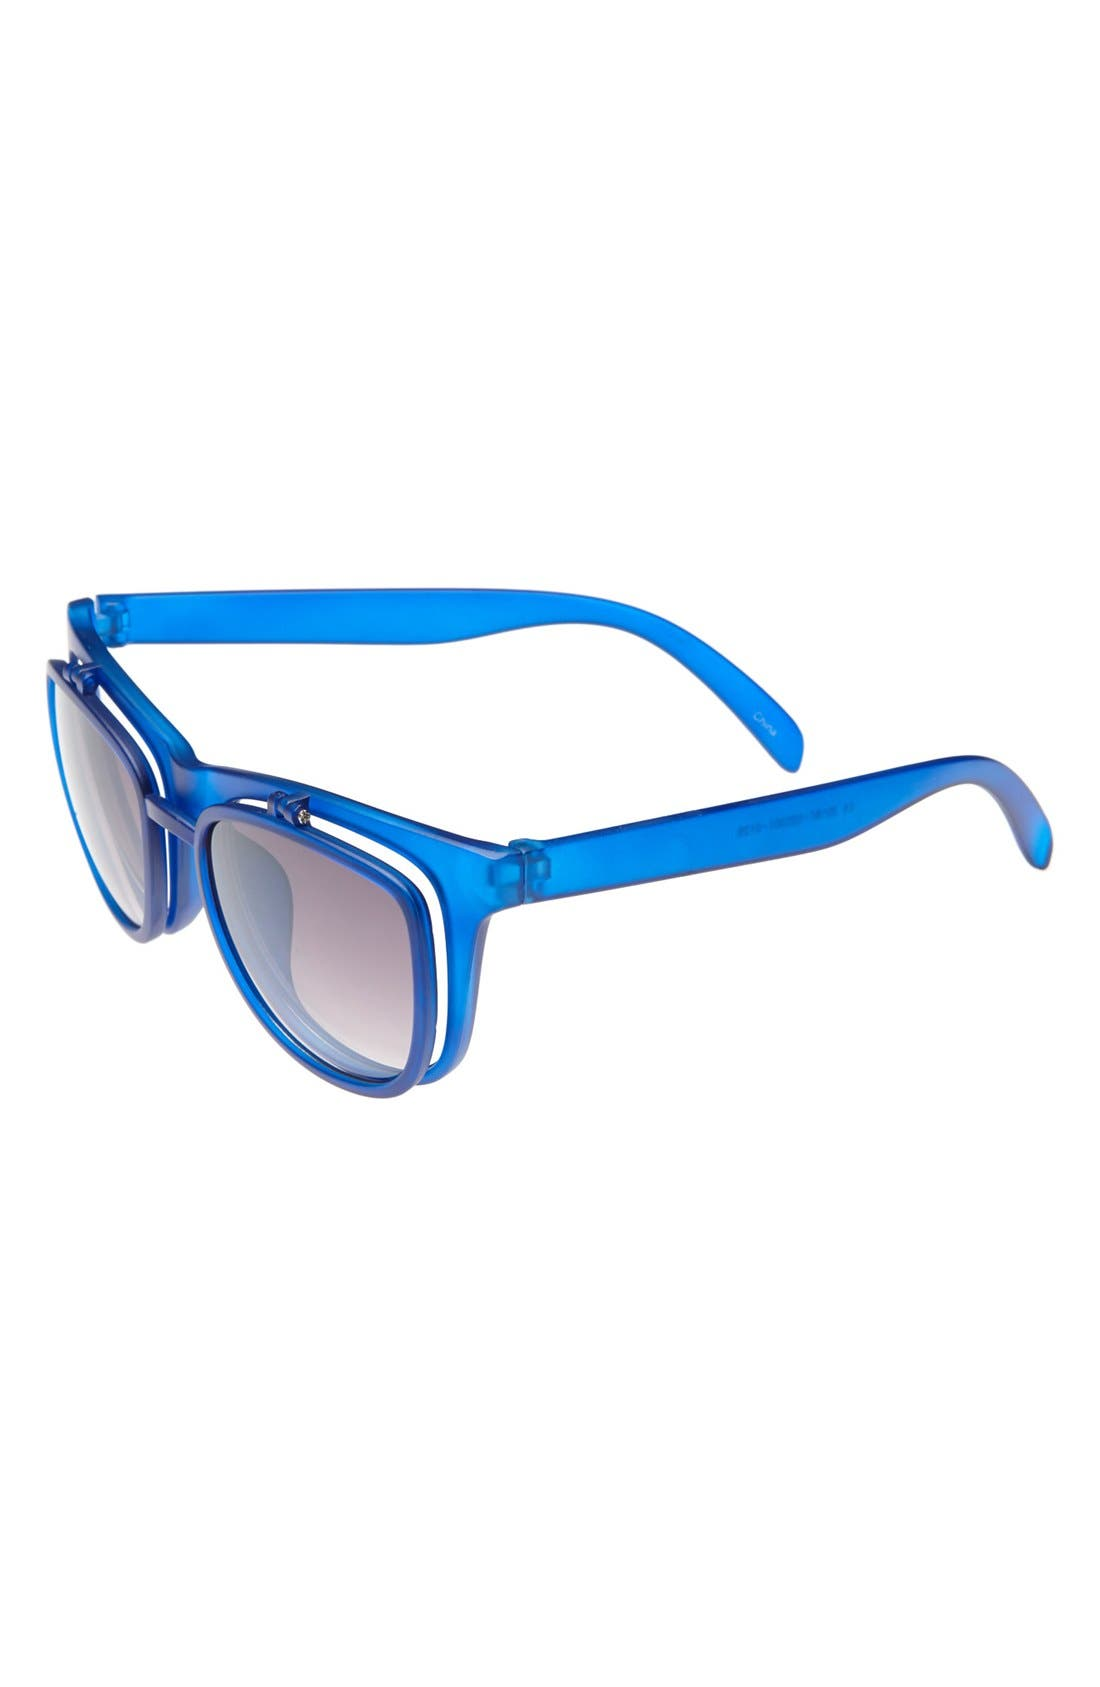 Alternate Image 1 Selected - Icon Eyewear 'Mason' Flip-Up Sunglasses (Boys)